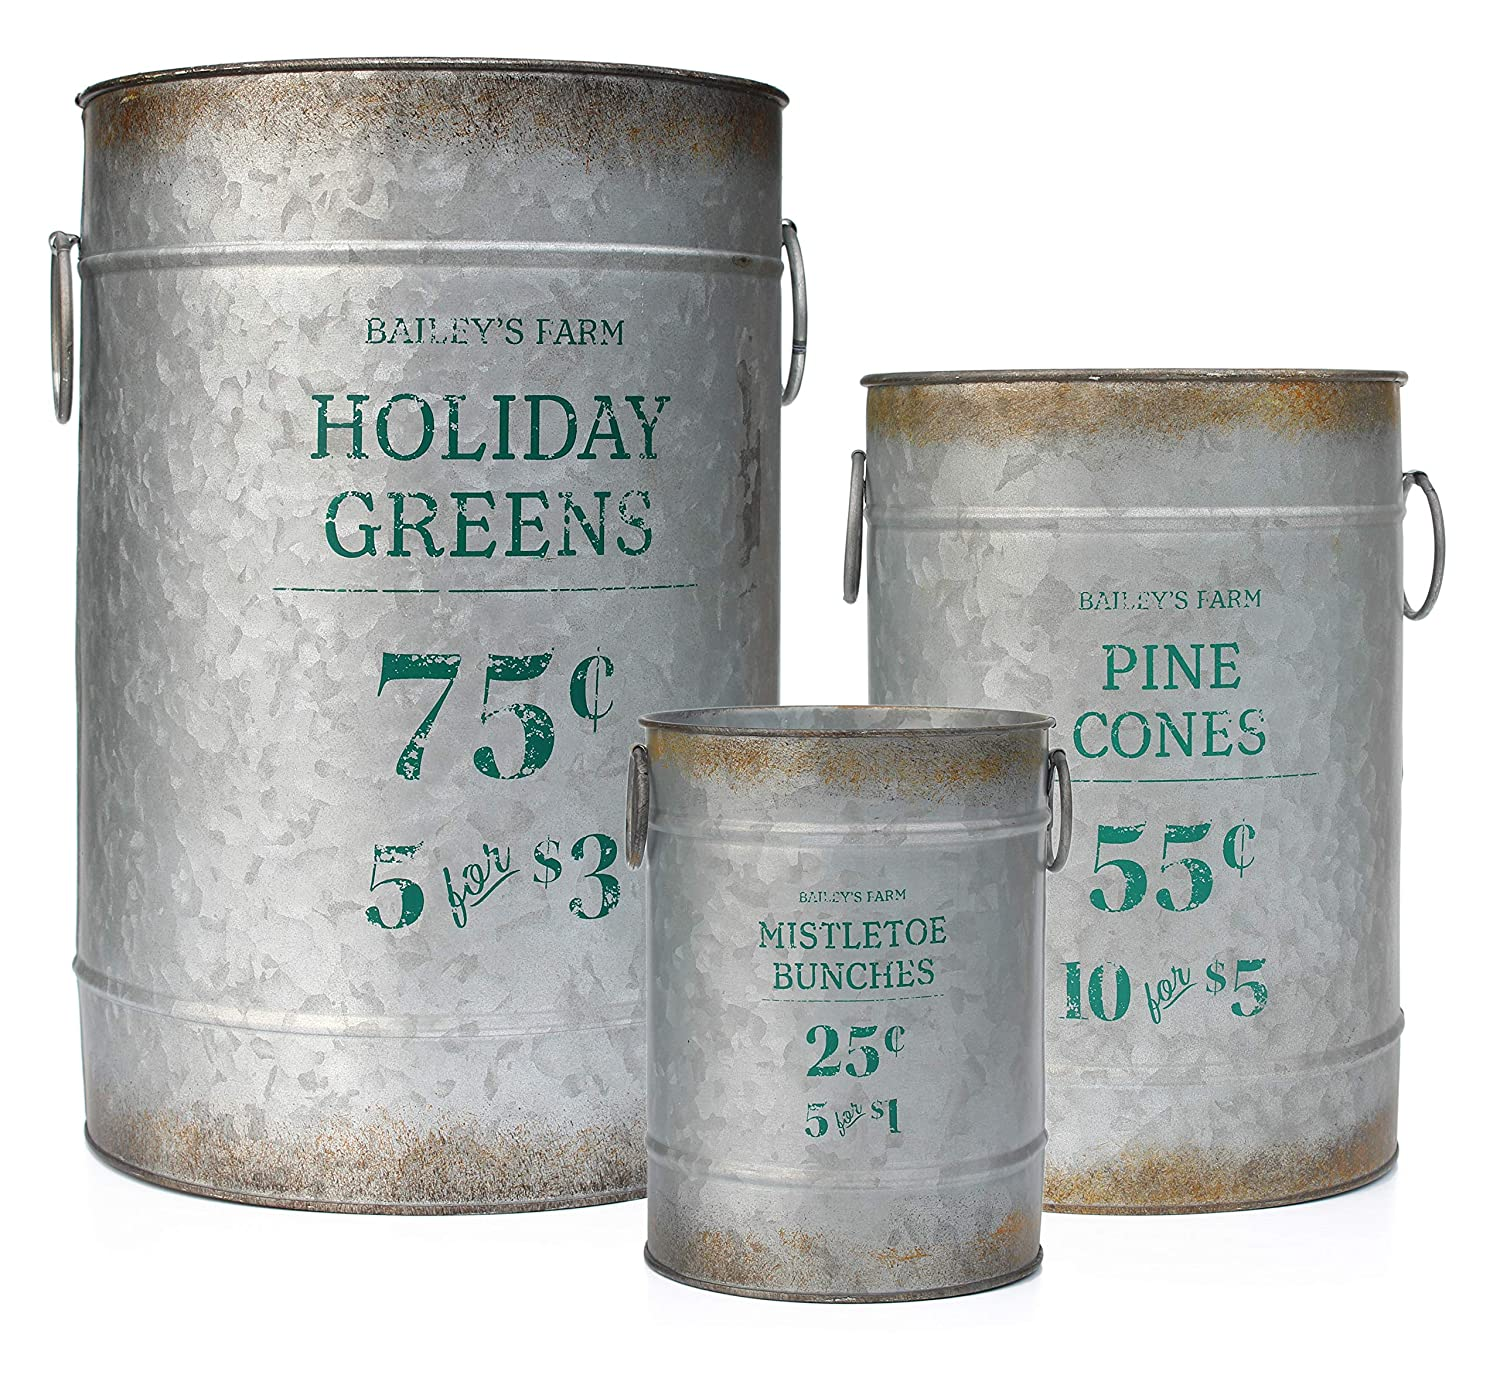 AuldHome Design Christmas Galvanized Greenery Buckets (Set of 3), Large, Medium, Small Metal Farmhouse Decor Galvanized Cans with Holiday Pine Motif for Flower Arrangements